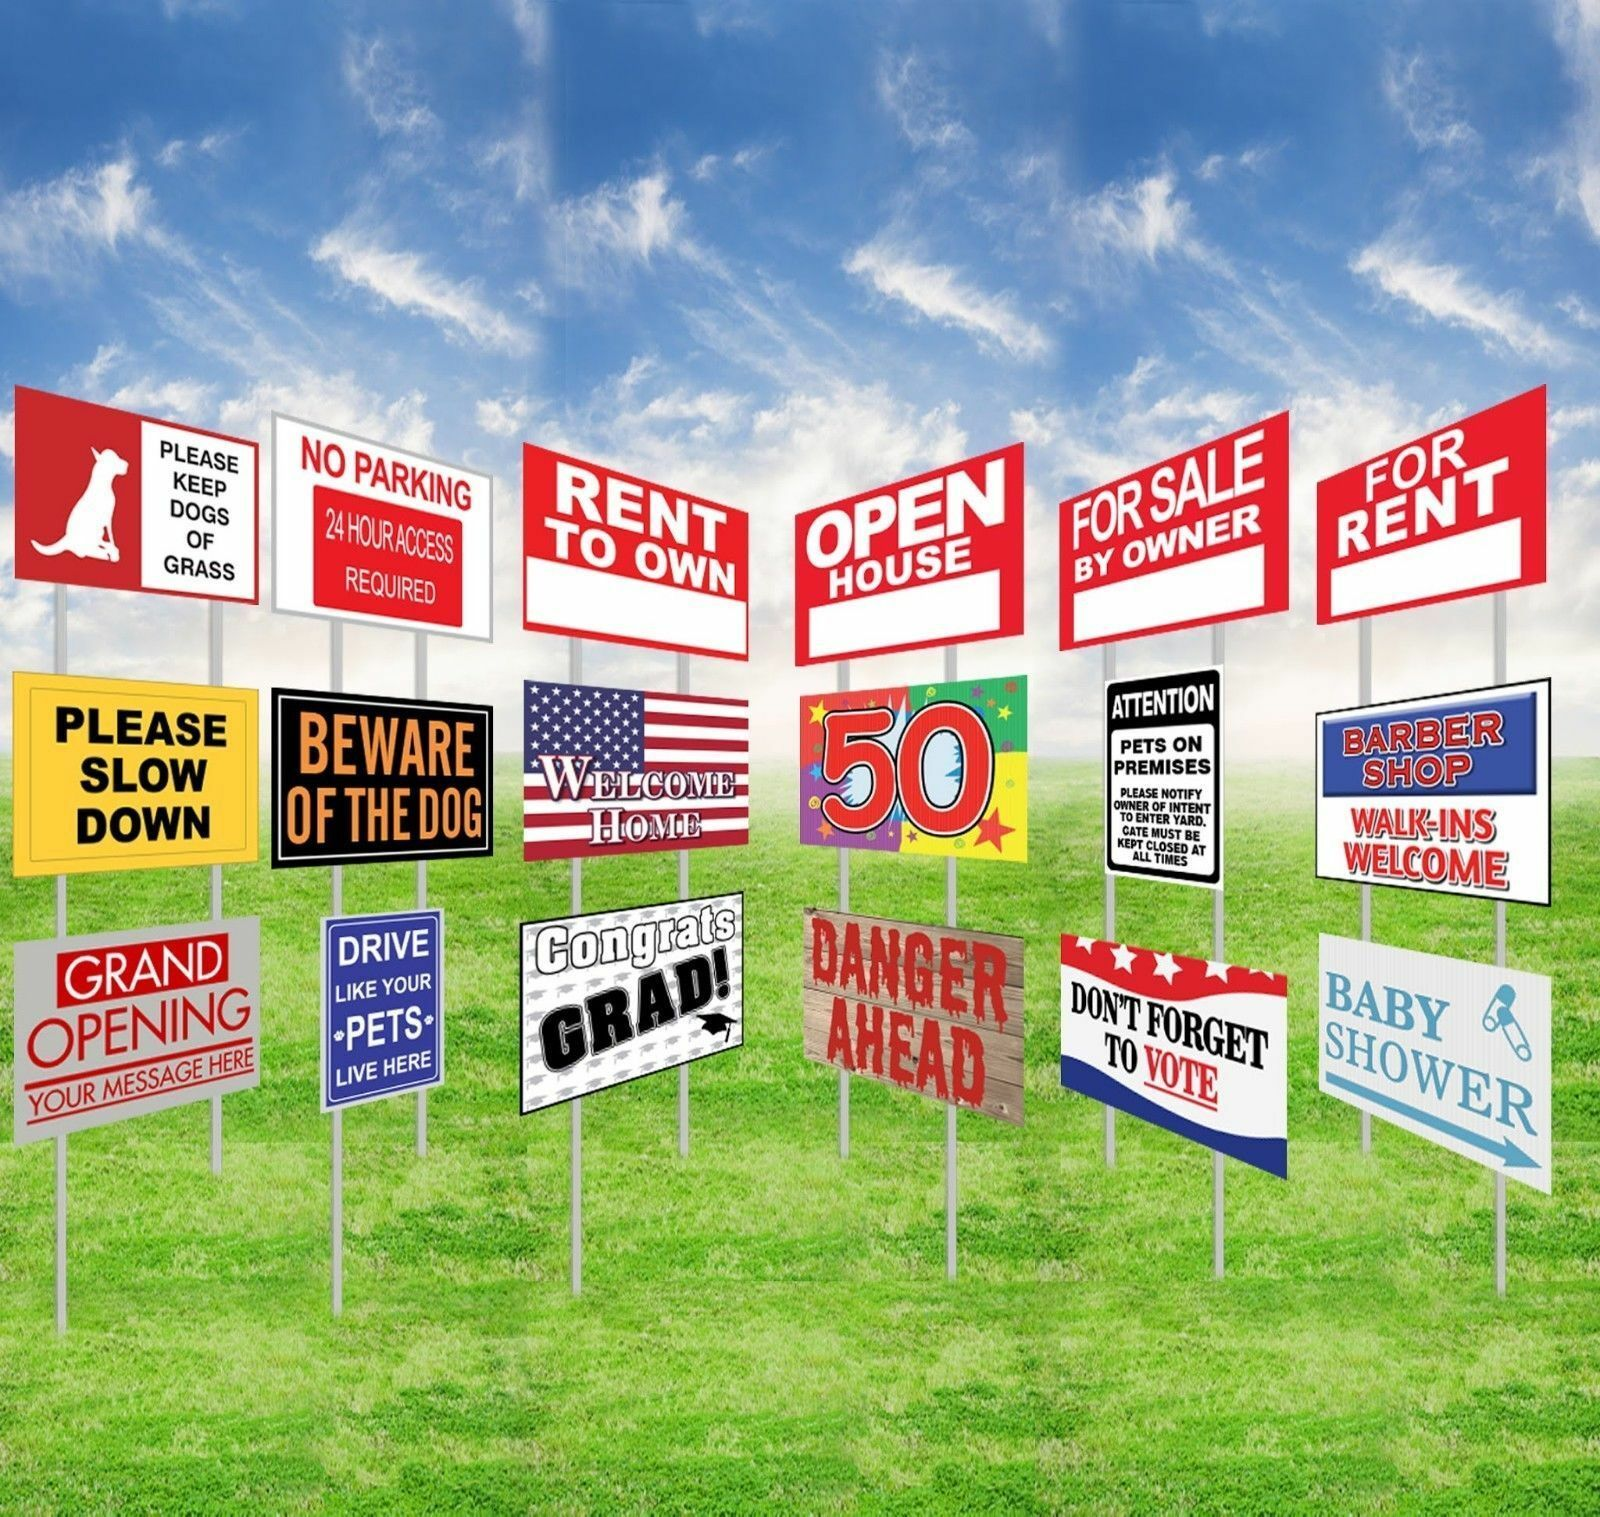 house for sale by owner yard lawn sign garden decor advertising corflute sign